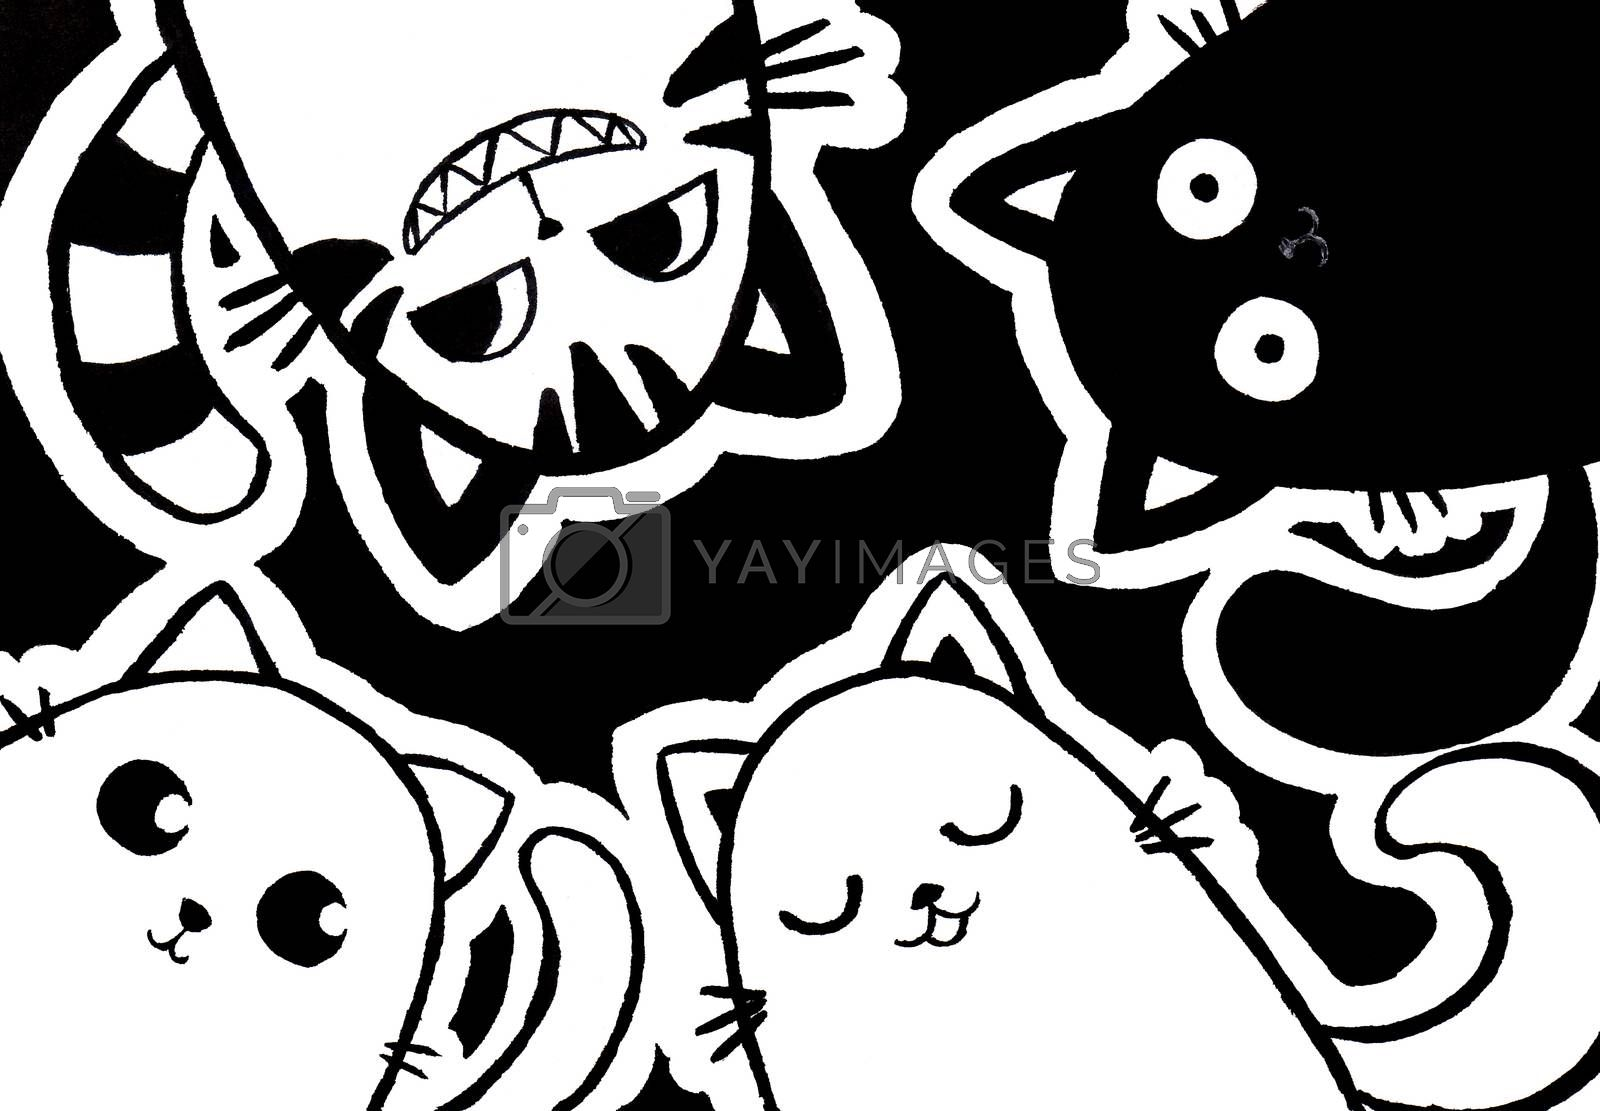 four cats cartoon character black ink hand painting for decoration in Halloween festival and pet artwork advertising.